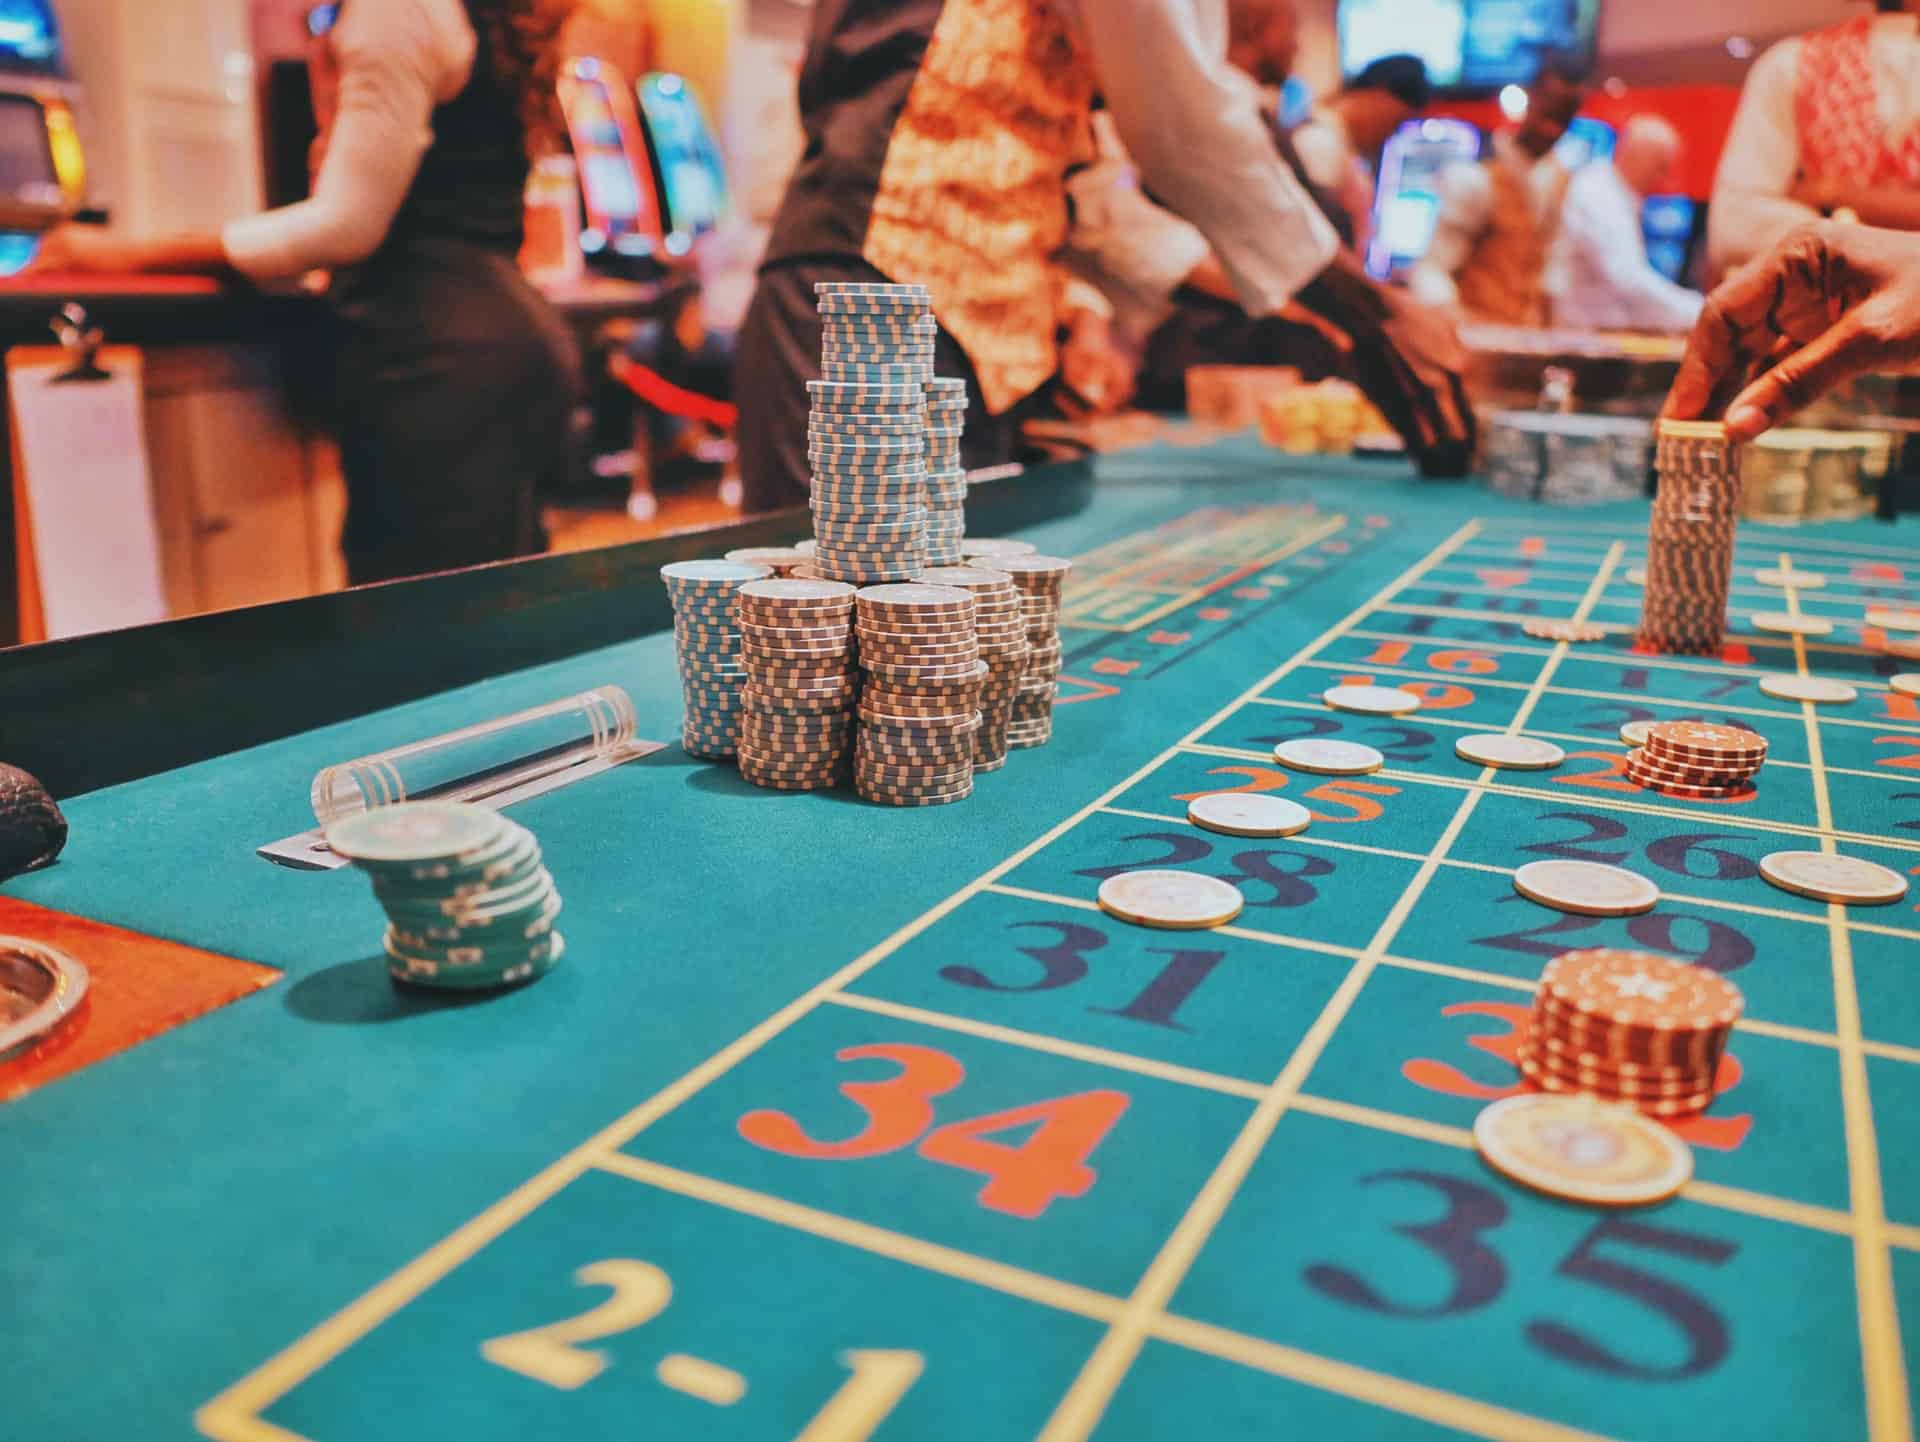 roulette - Popular Casino Games to Try Your Luck